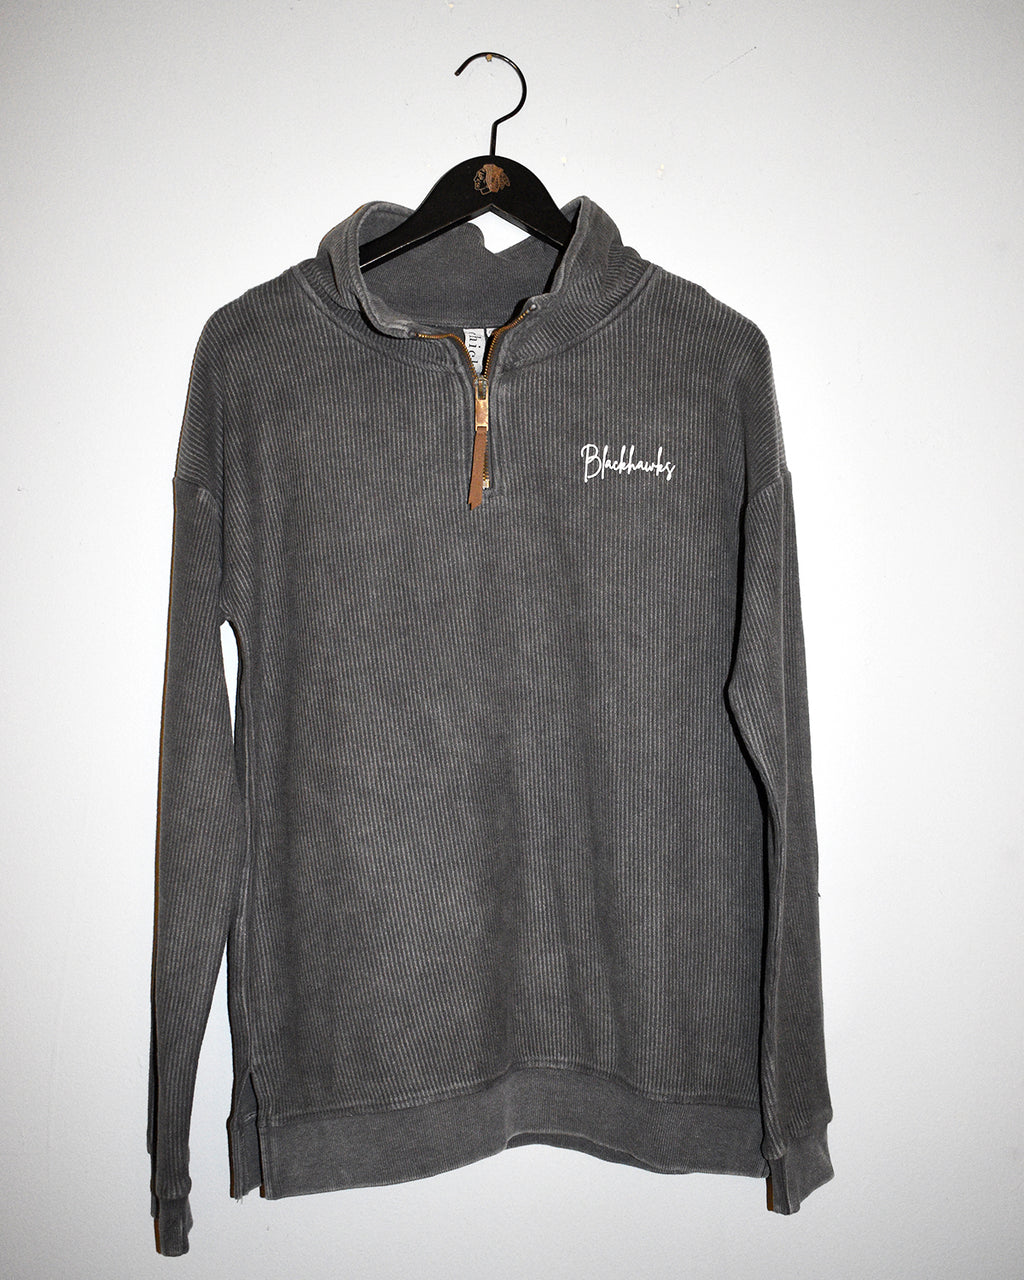 Ladies chicka-d Charcoal Corded Quarter Zip